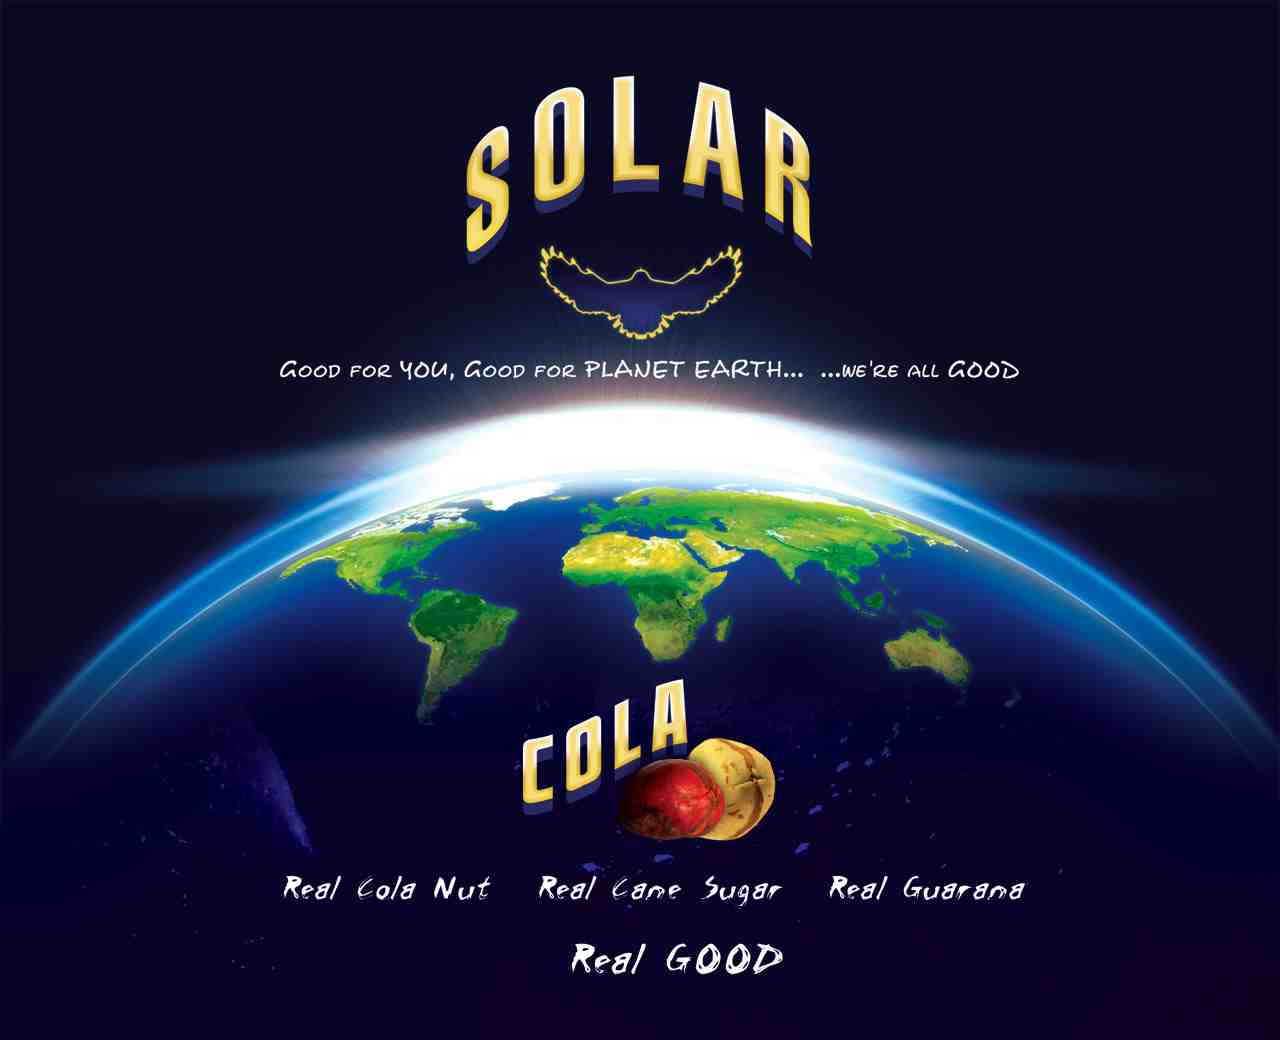 Planet Earth and Solar Cola good for you